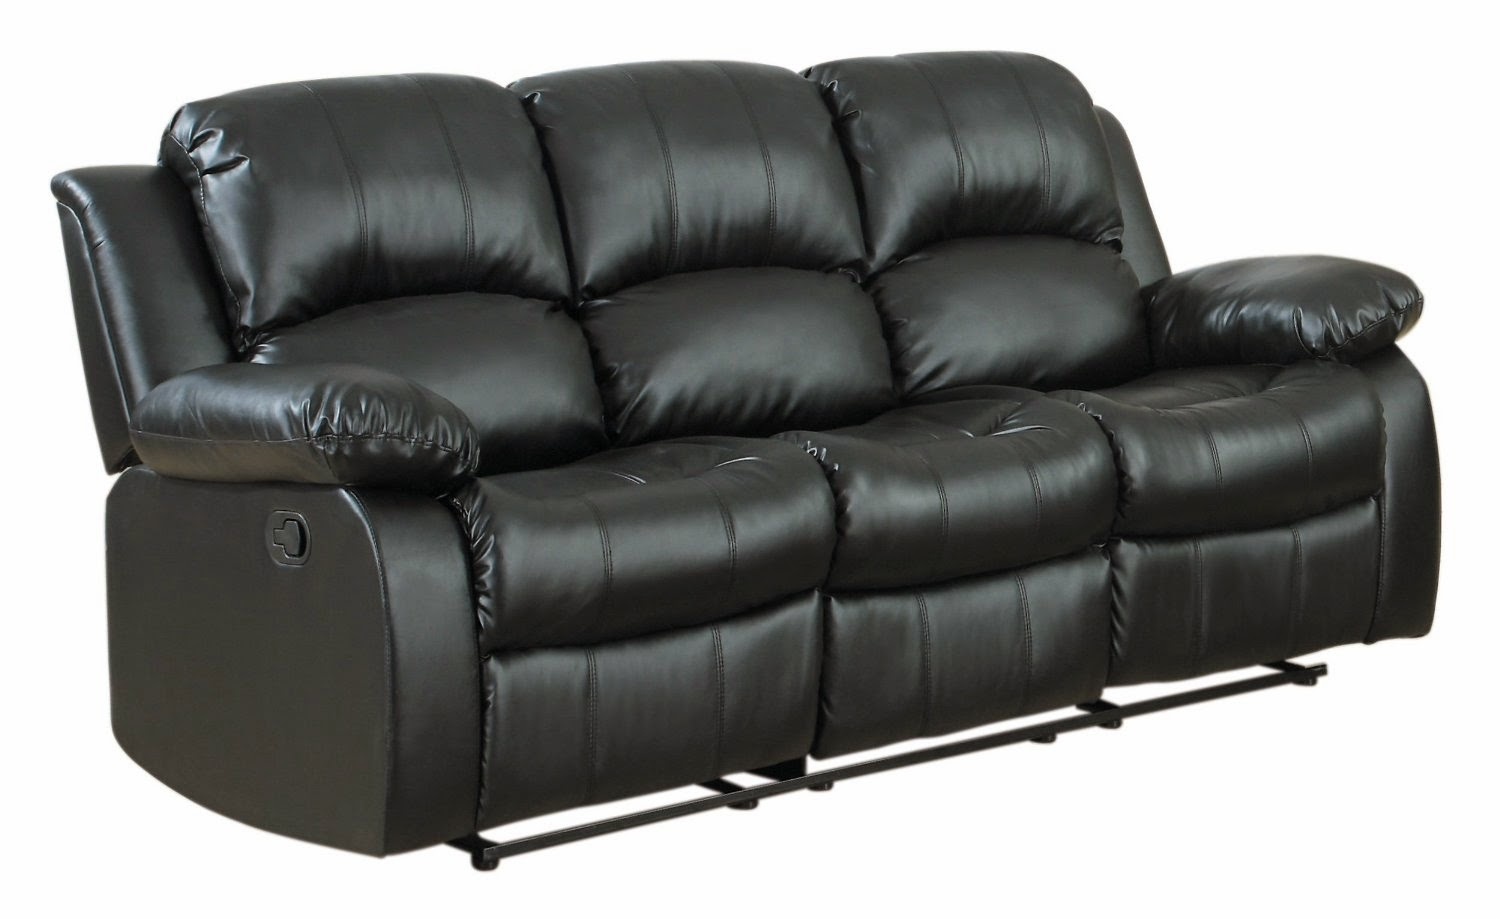 Sectional Reclining Leather Sofas Steve Silver Silverado Sofa Best For The Money